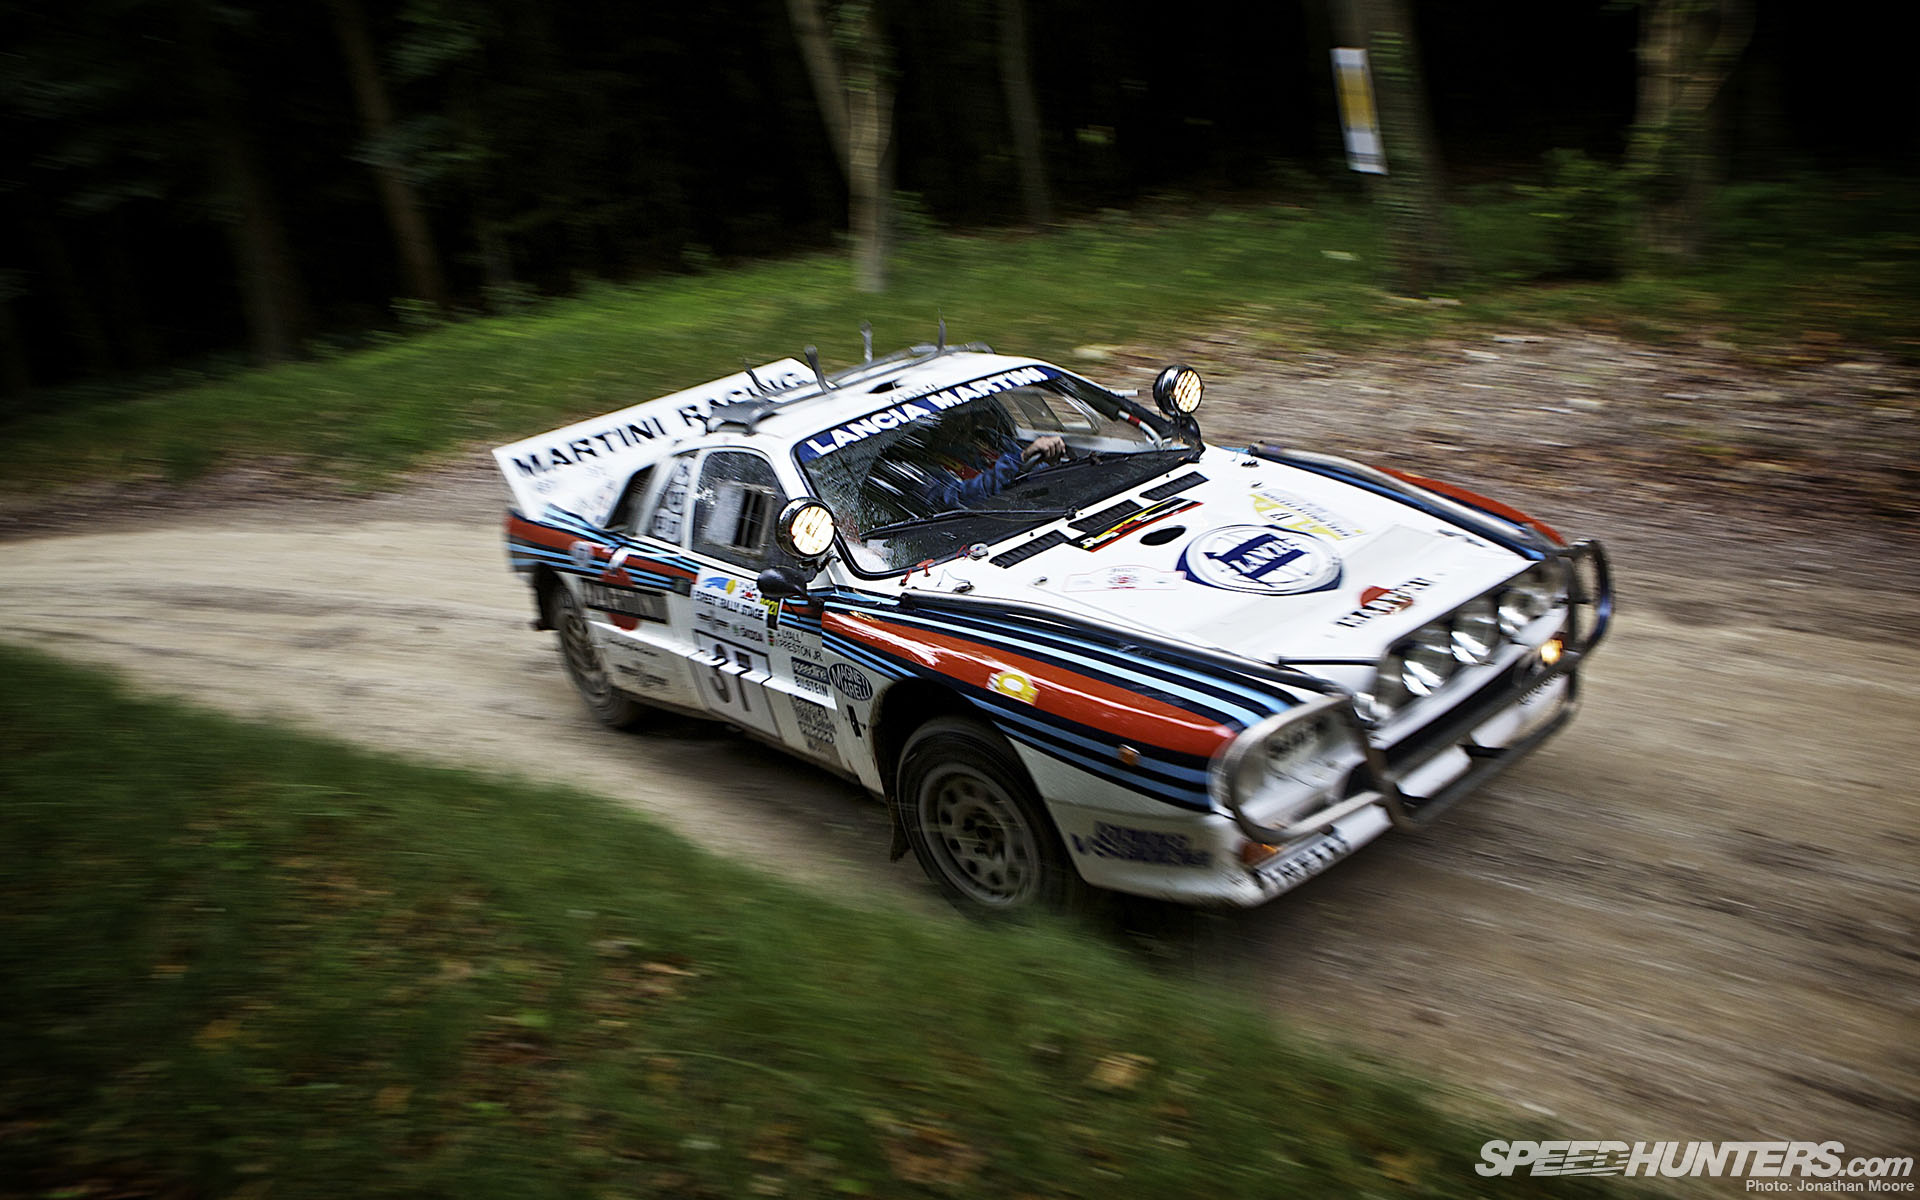 Lancia 037 Wallpaper For You Rally Fans